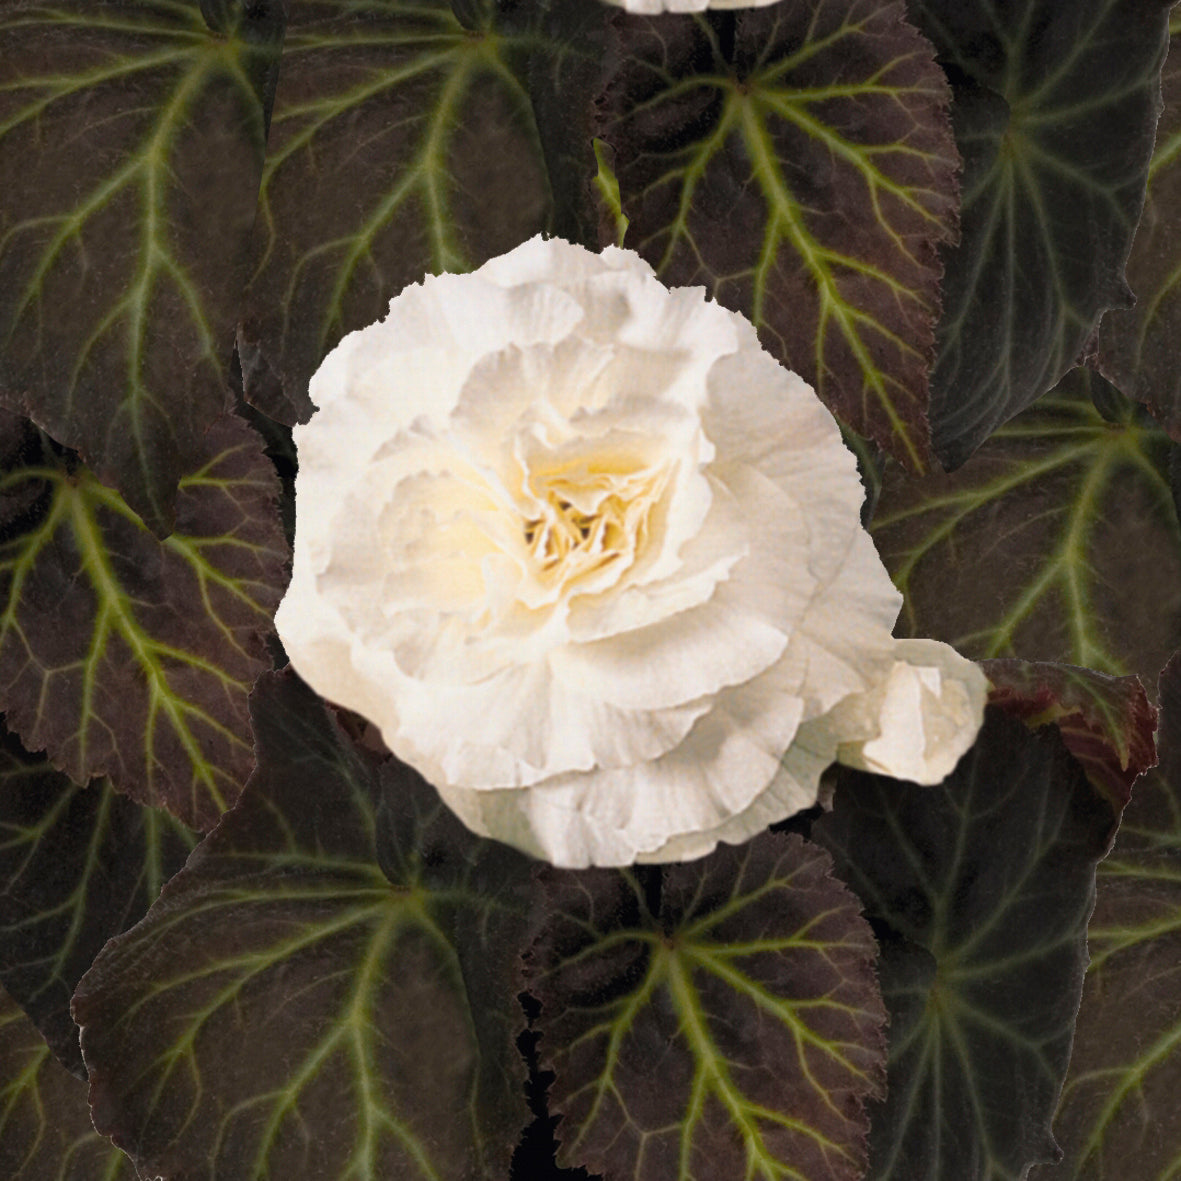 Annual Plants|Begonia - Nonstop Mocca White Tuberous Begonia 1